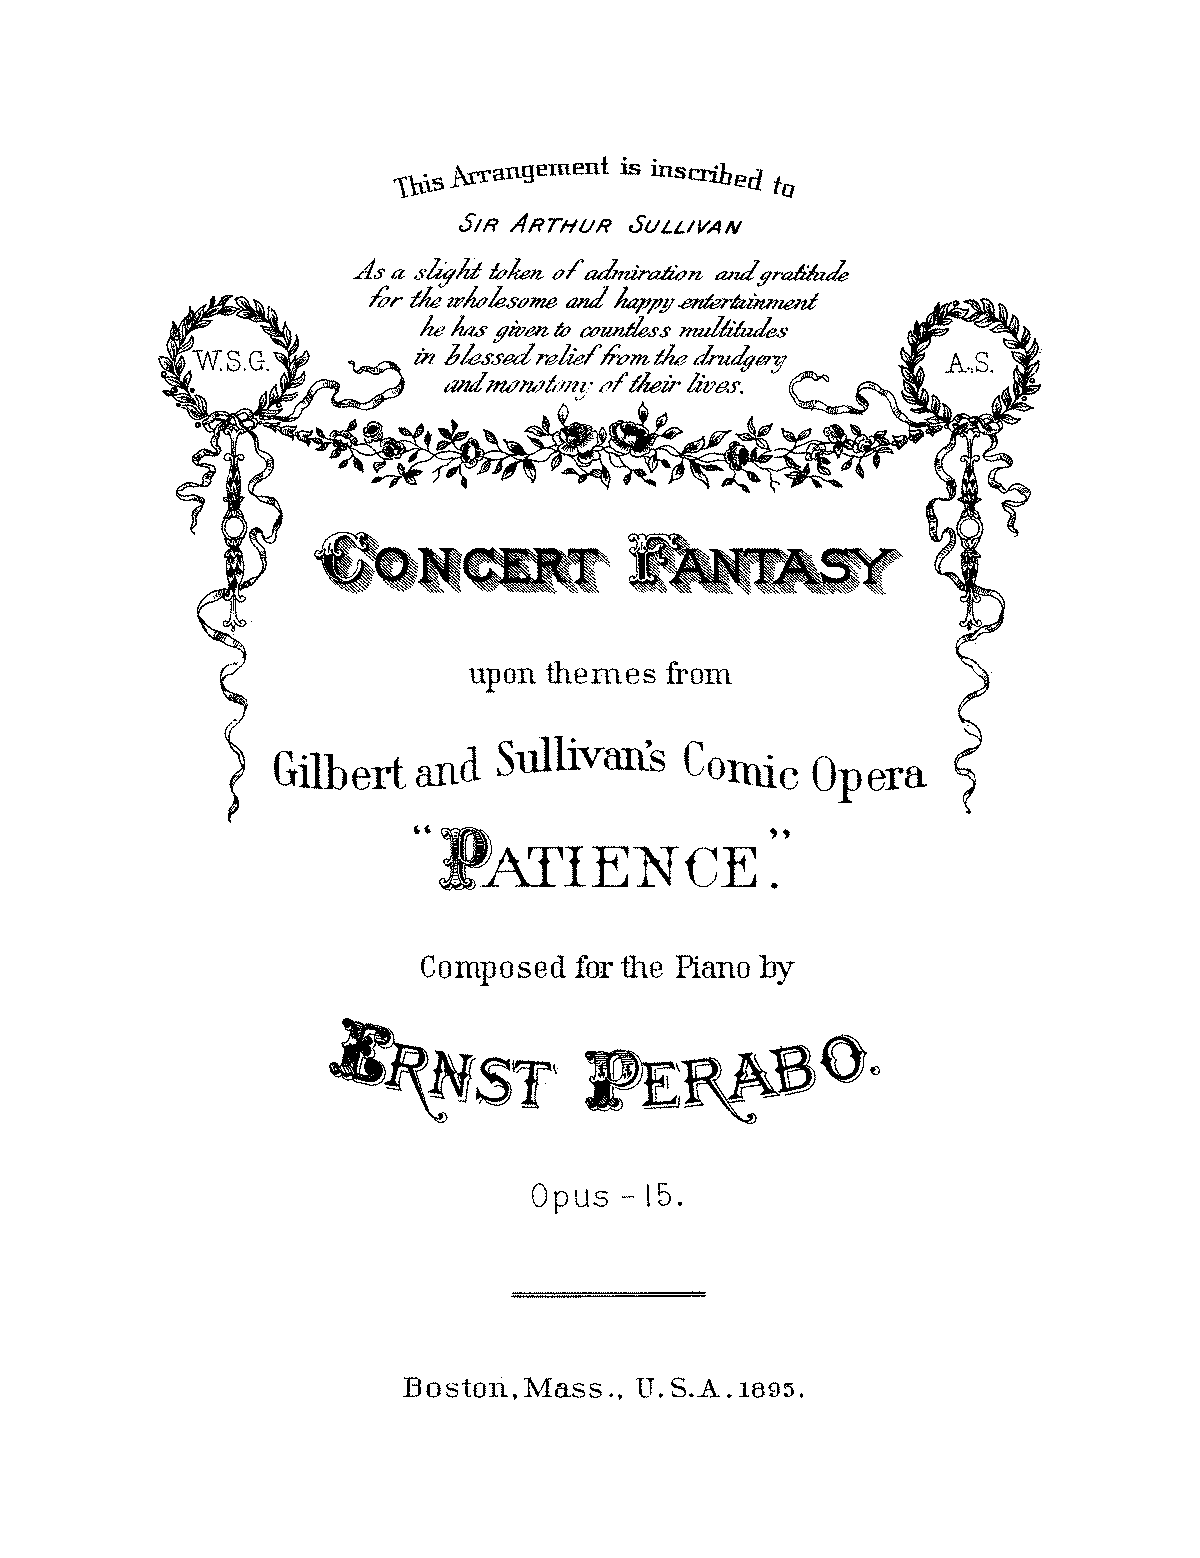 PMLP519774-EPerabe Concert Fantasy upon Themes from Patience, Op.15.pdf